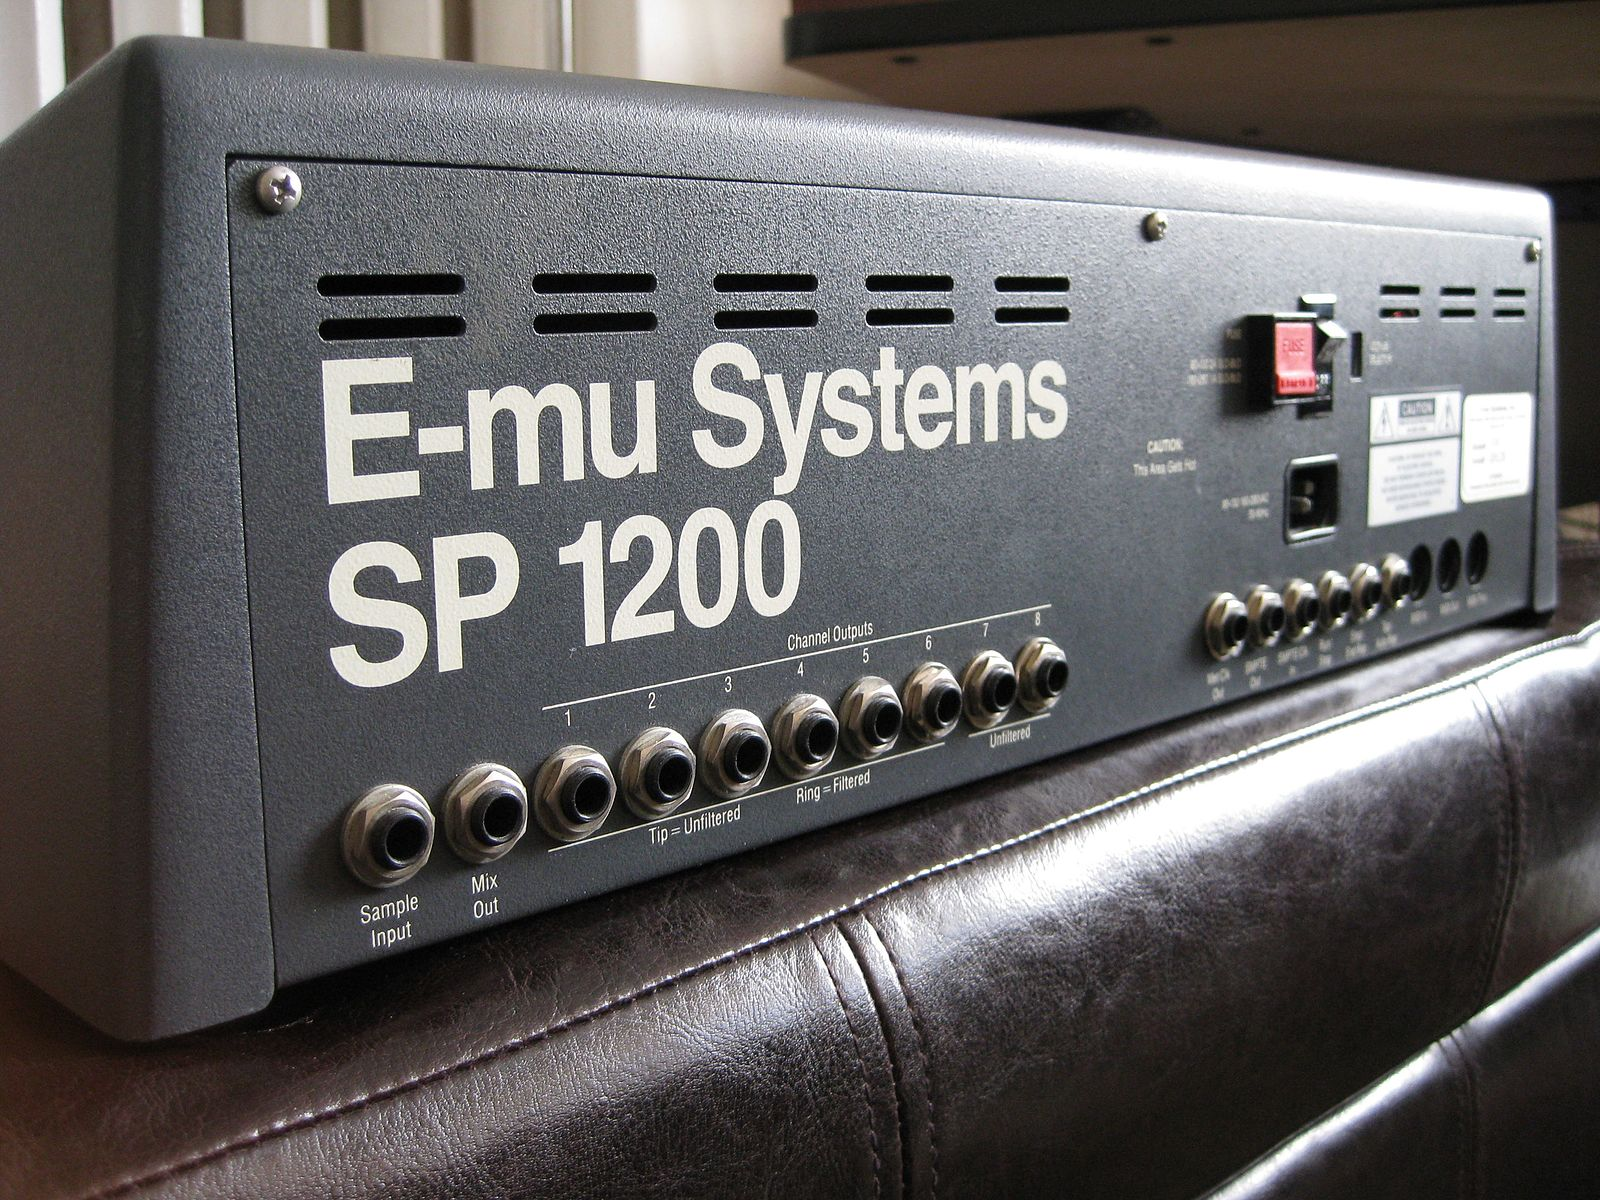 The back panel of an E-Mu SP-1200 digital sampler.